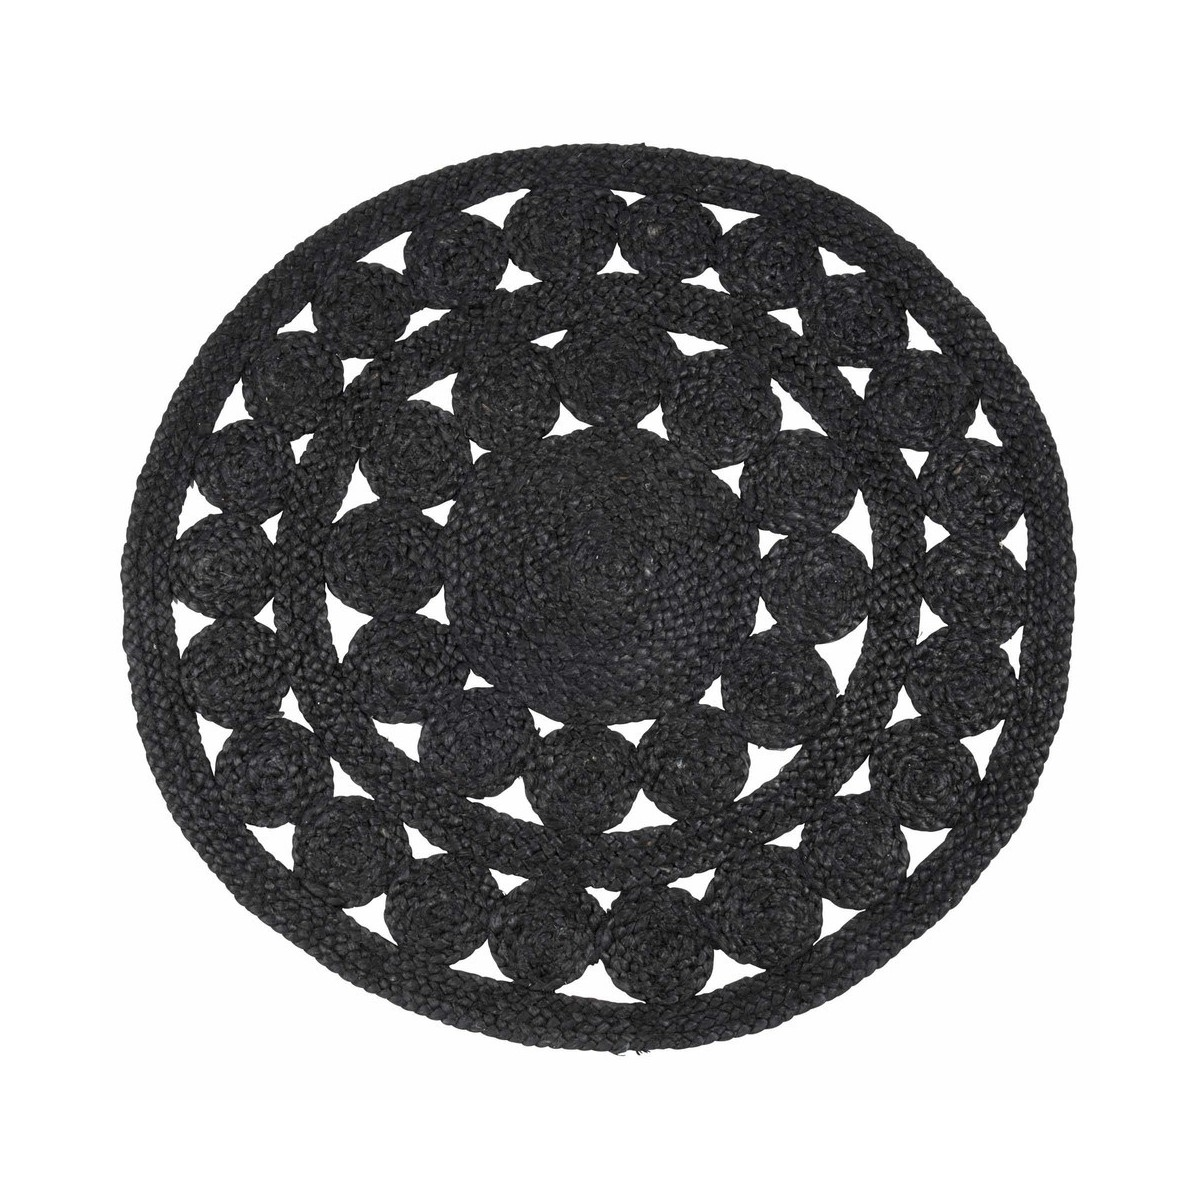 carrelage design tapis rond jute moderne design pour carrelage de sol et rev tement de tapis. Black Bedroom Furniture Sets. Home Design Ideas